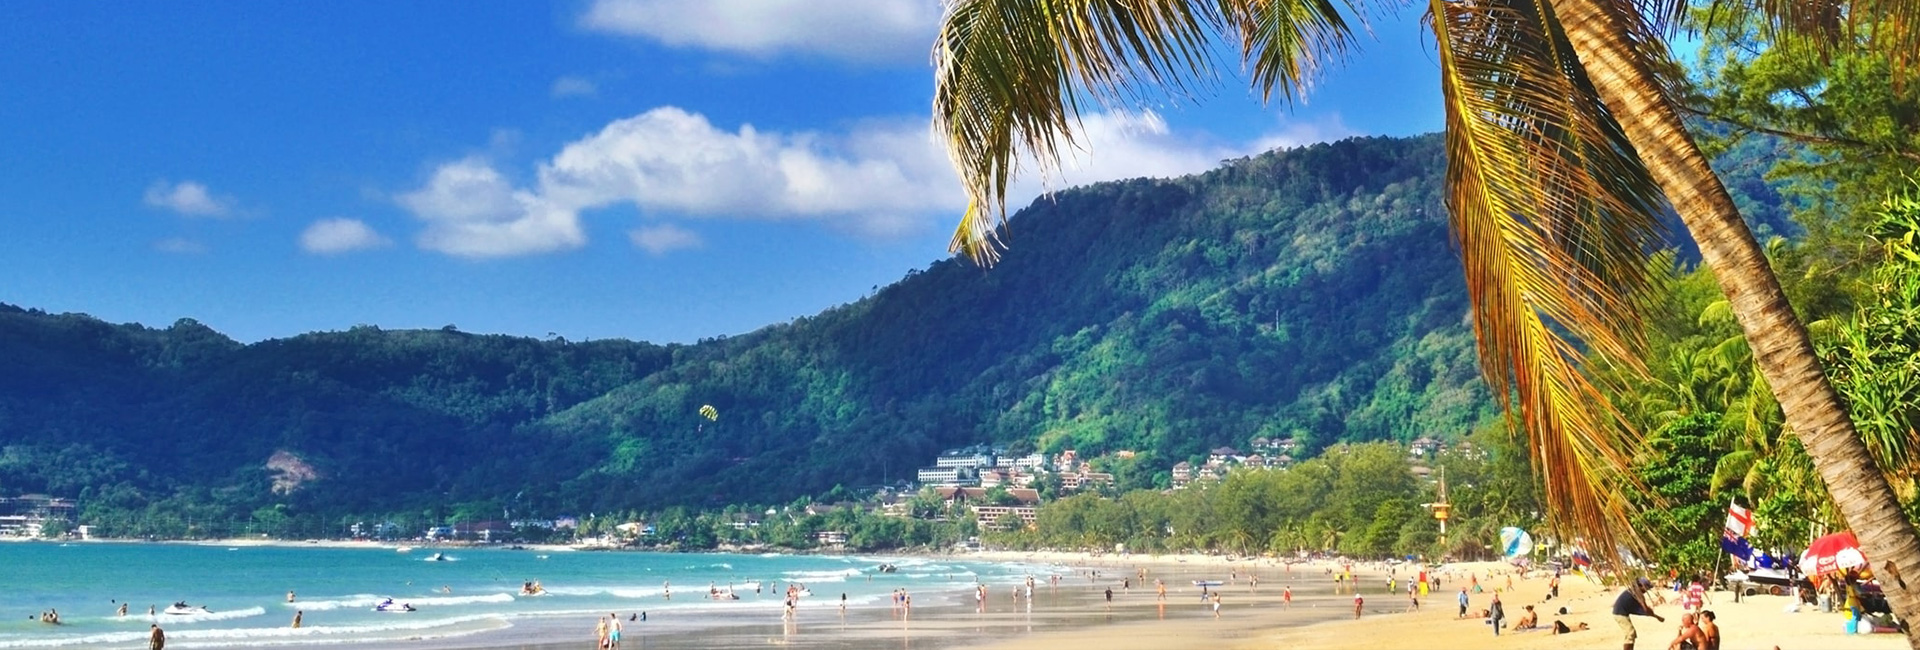 A complete guide for Patong beach nightlife